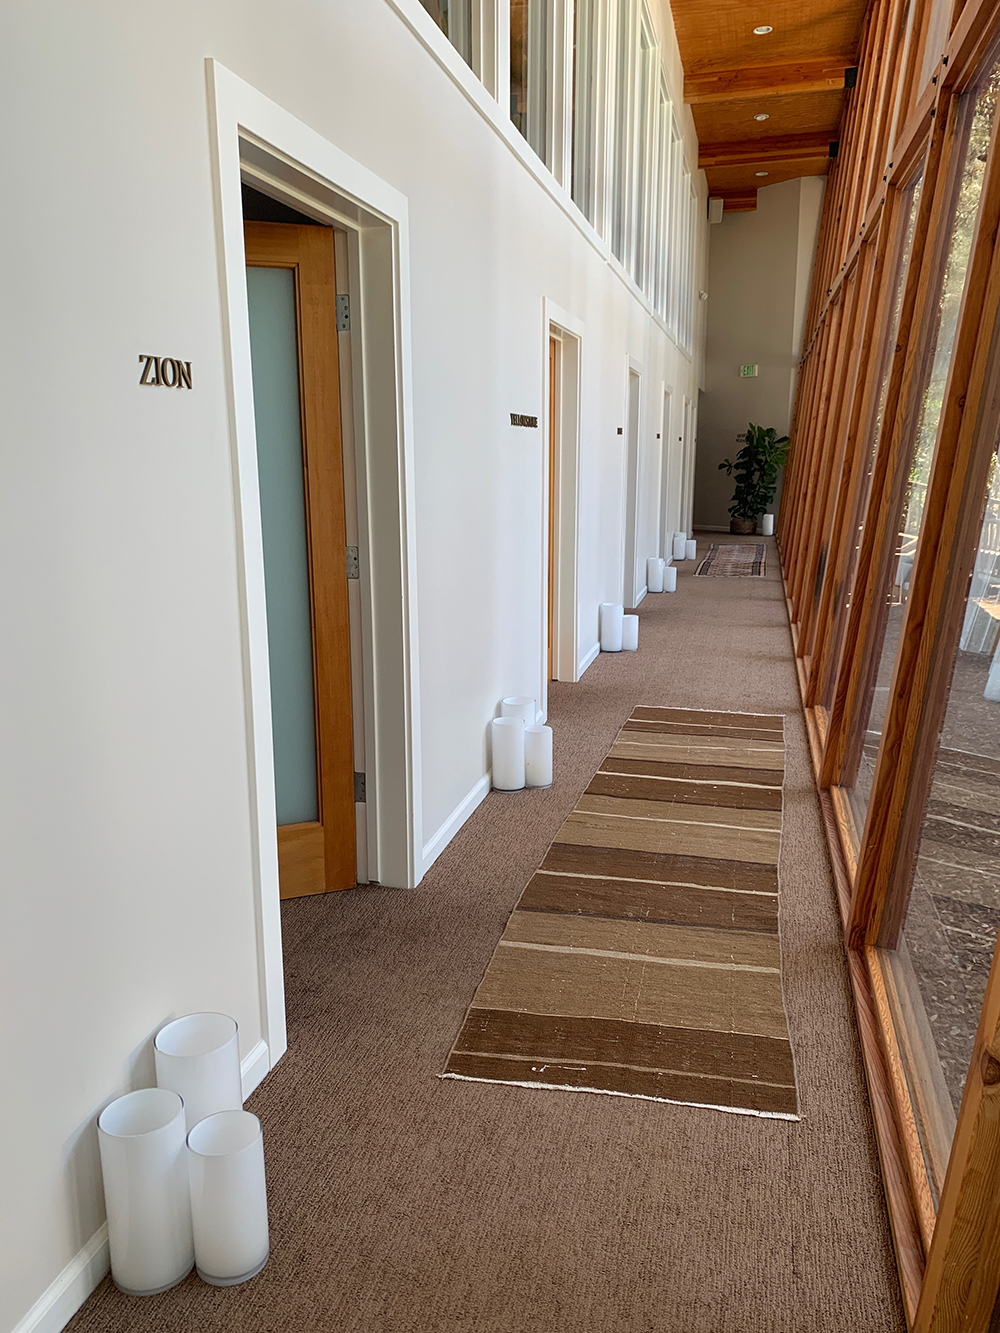 All of the spa's treatment rooms are named after national parks.